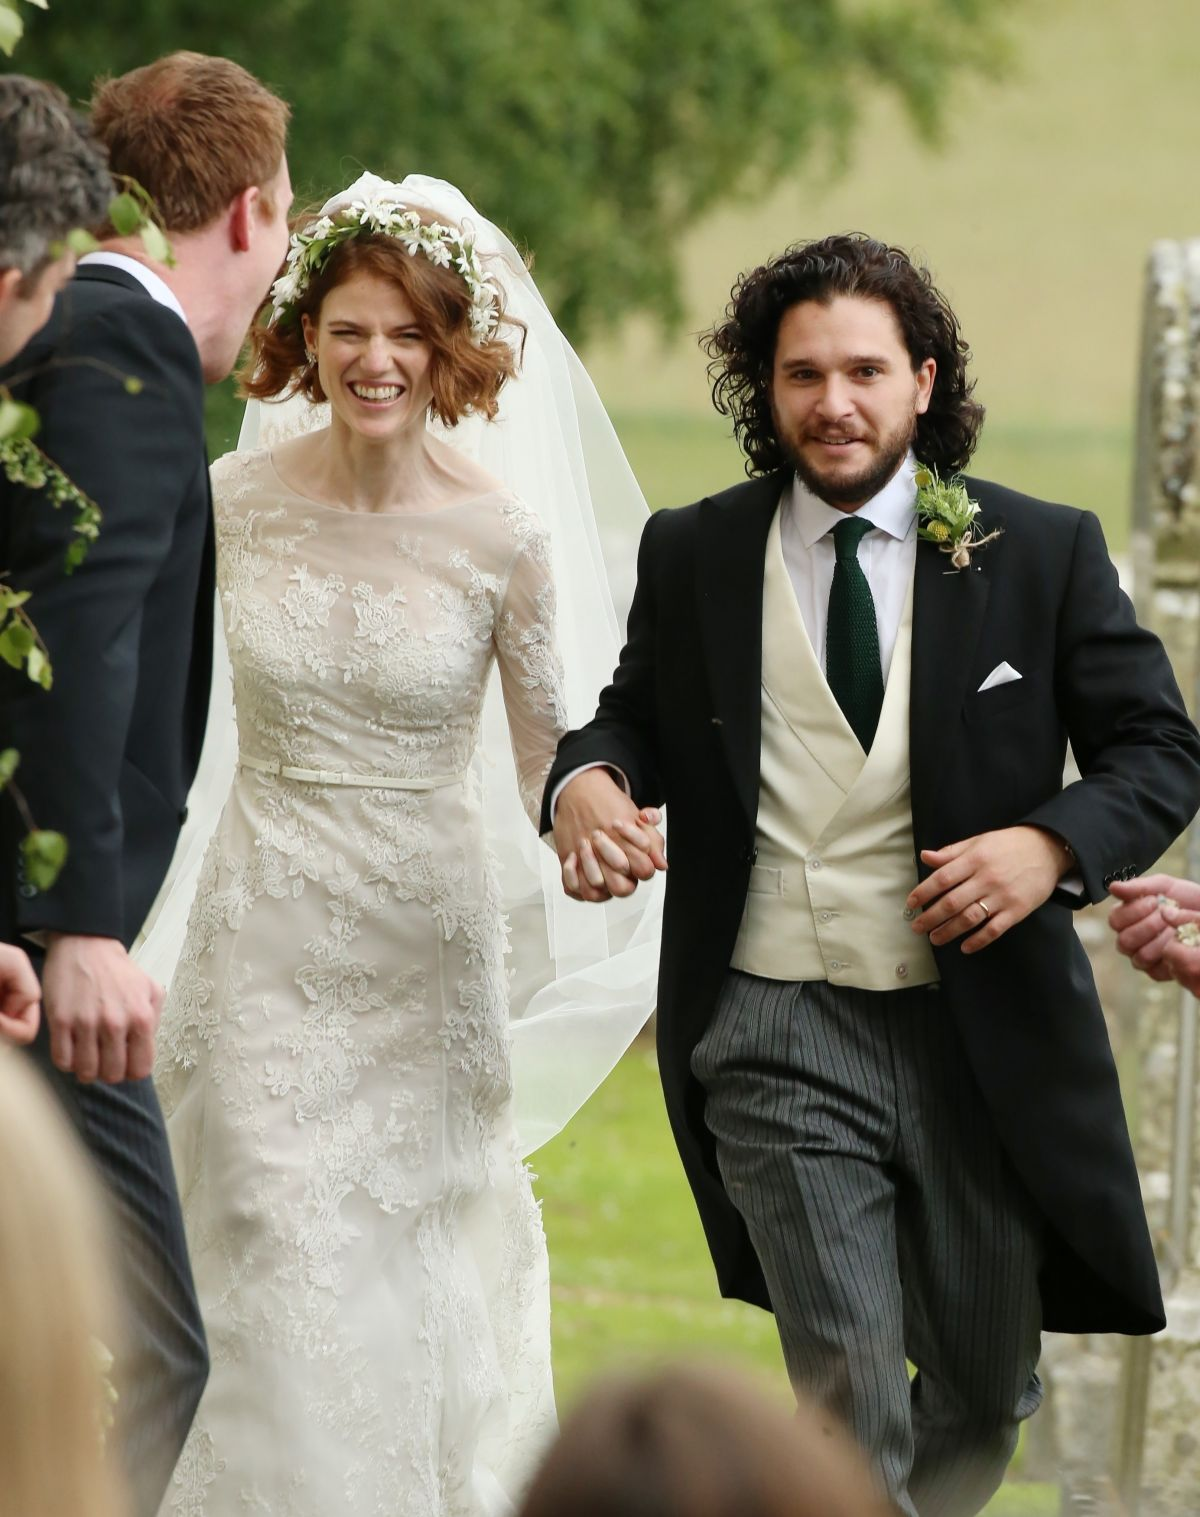 Rose Leslie At Her Wedding With Kit Harington In Scotland 06 23 2018